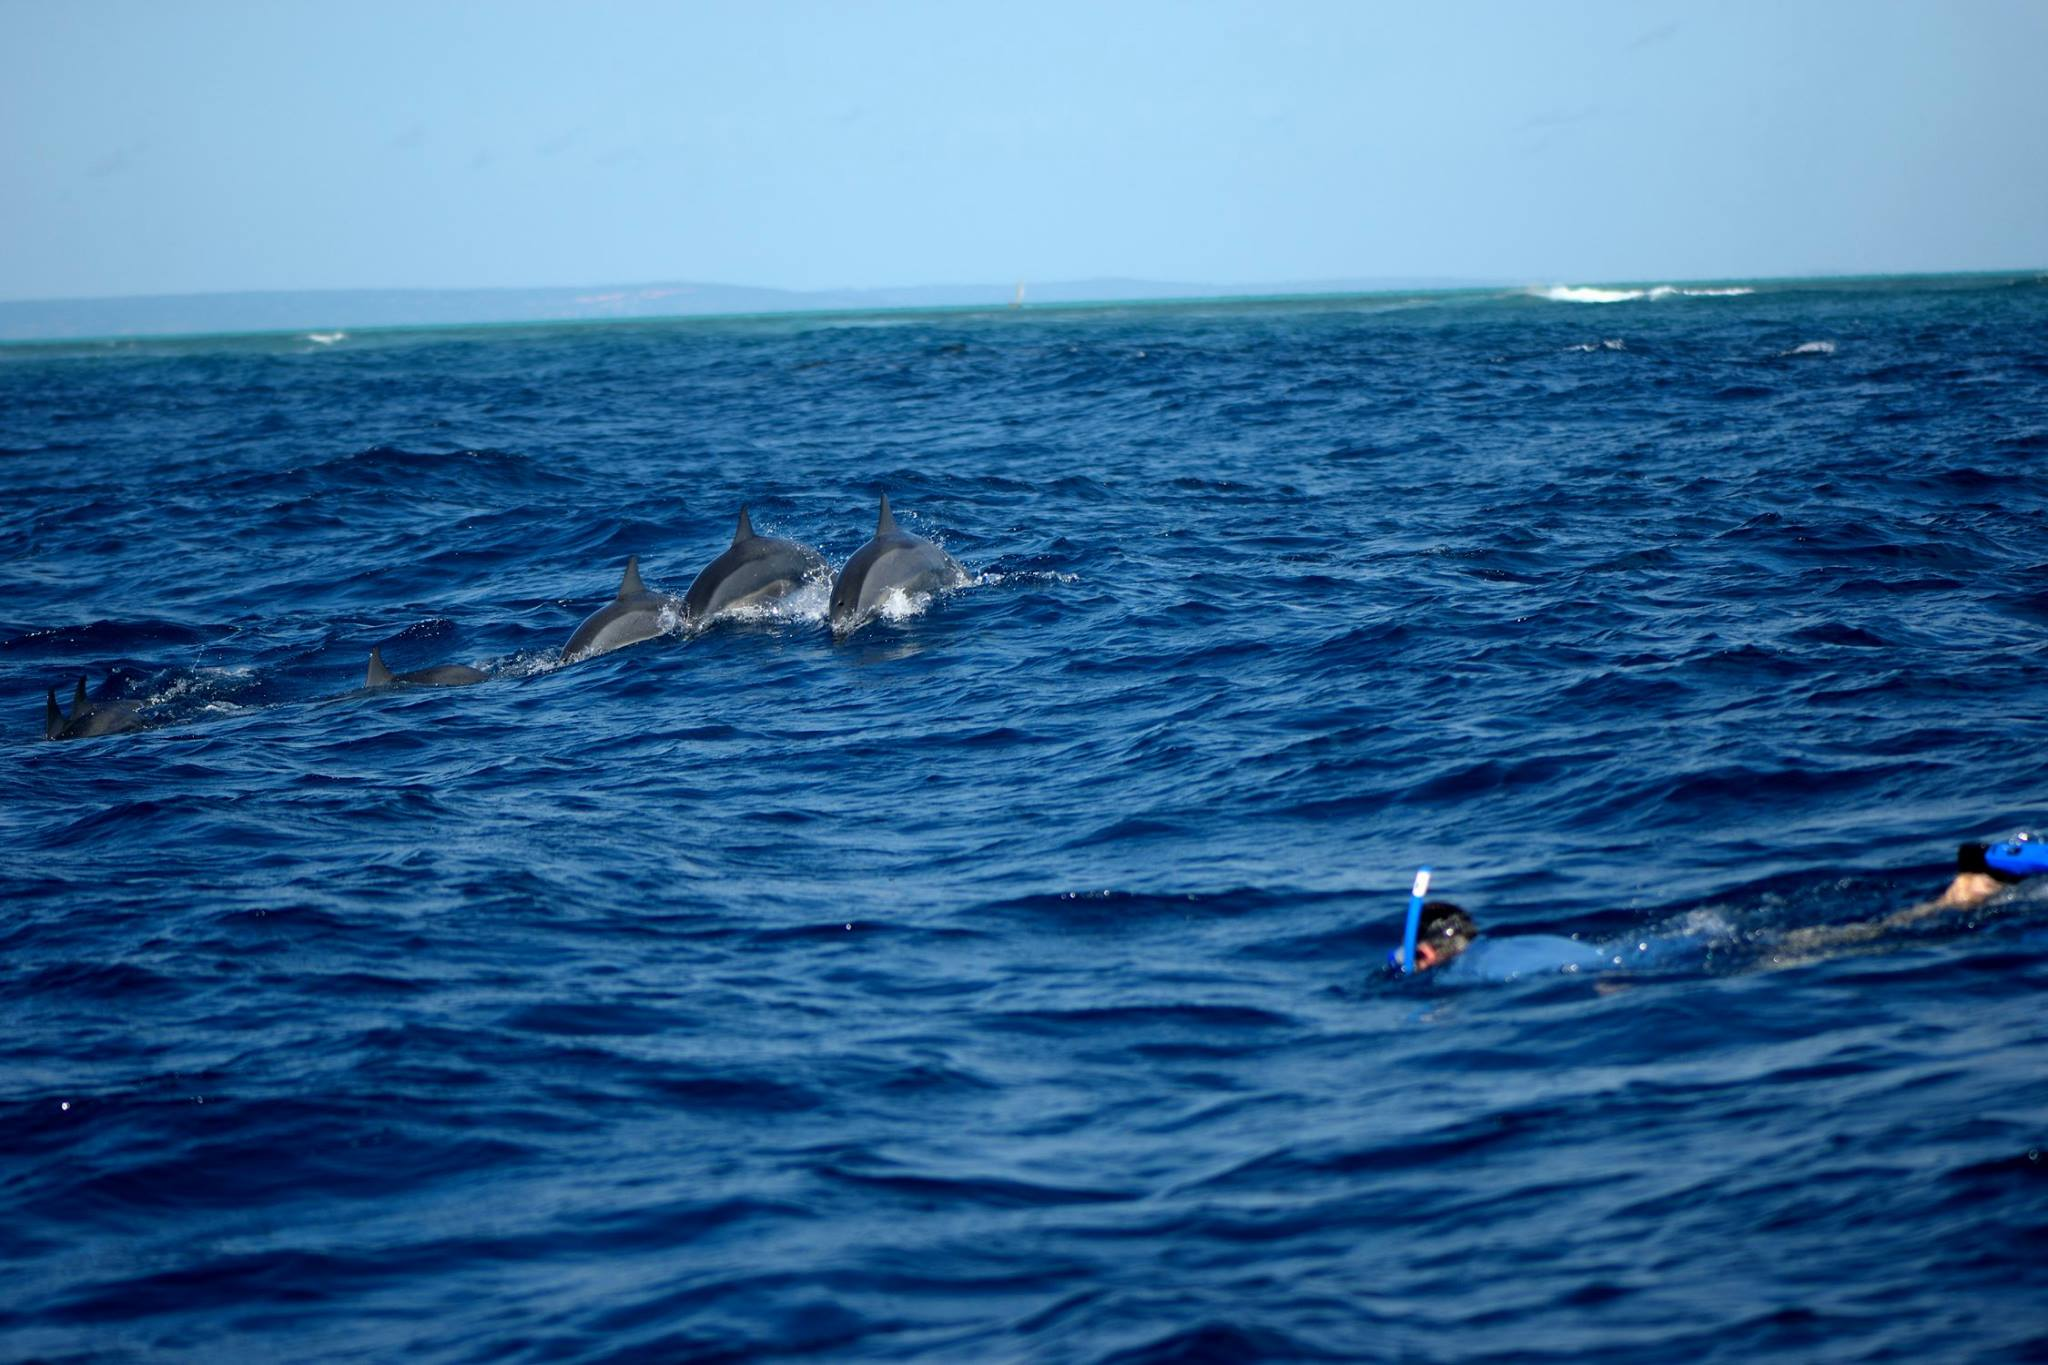 Dophins at Mafia island